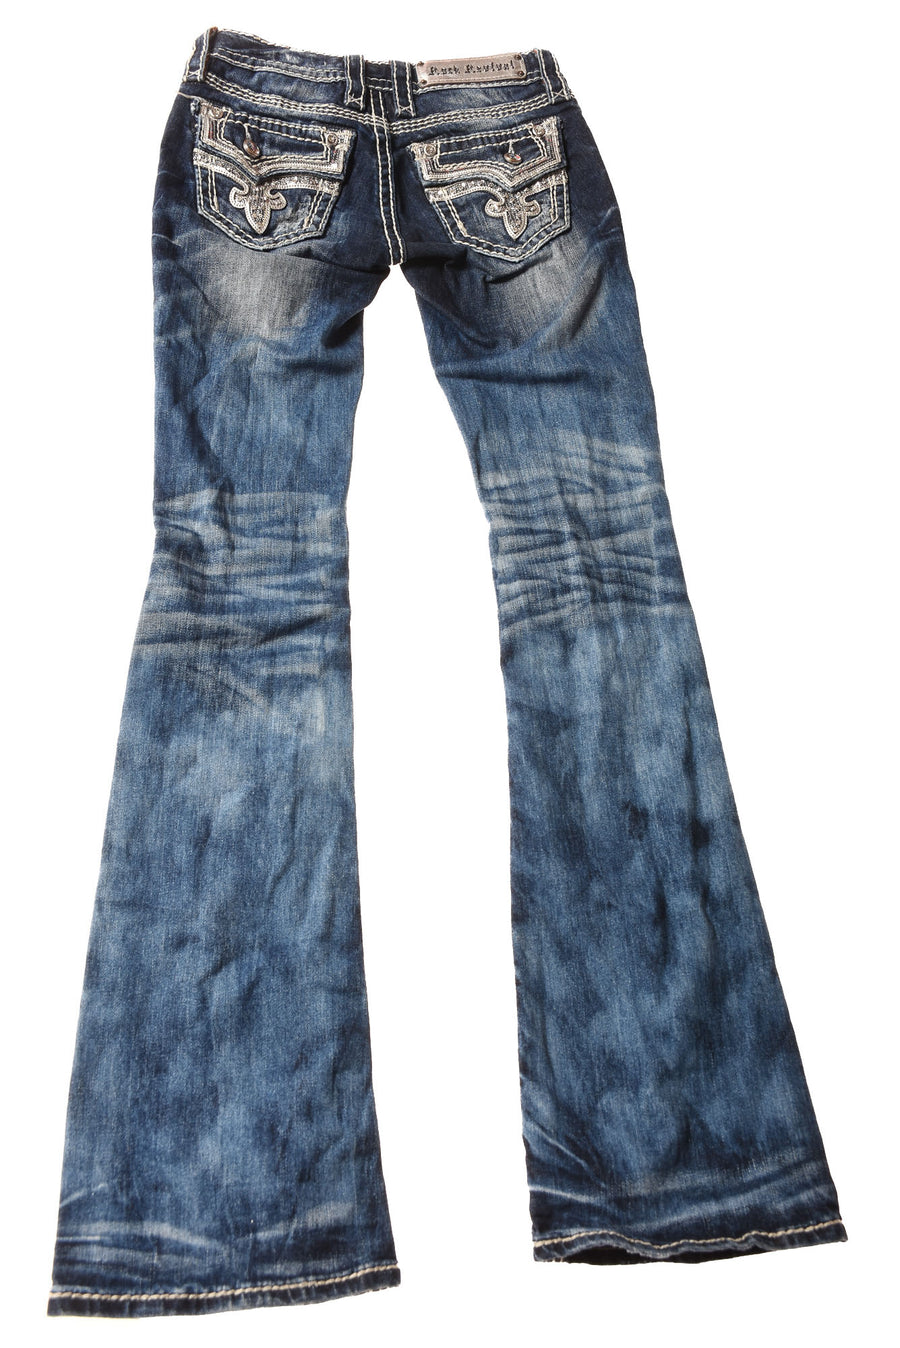 Women's Jeans By Rock Revival